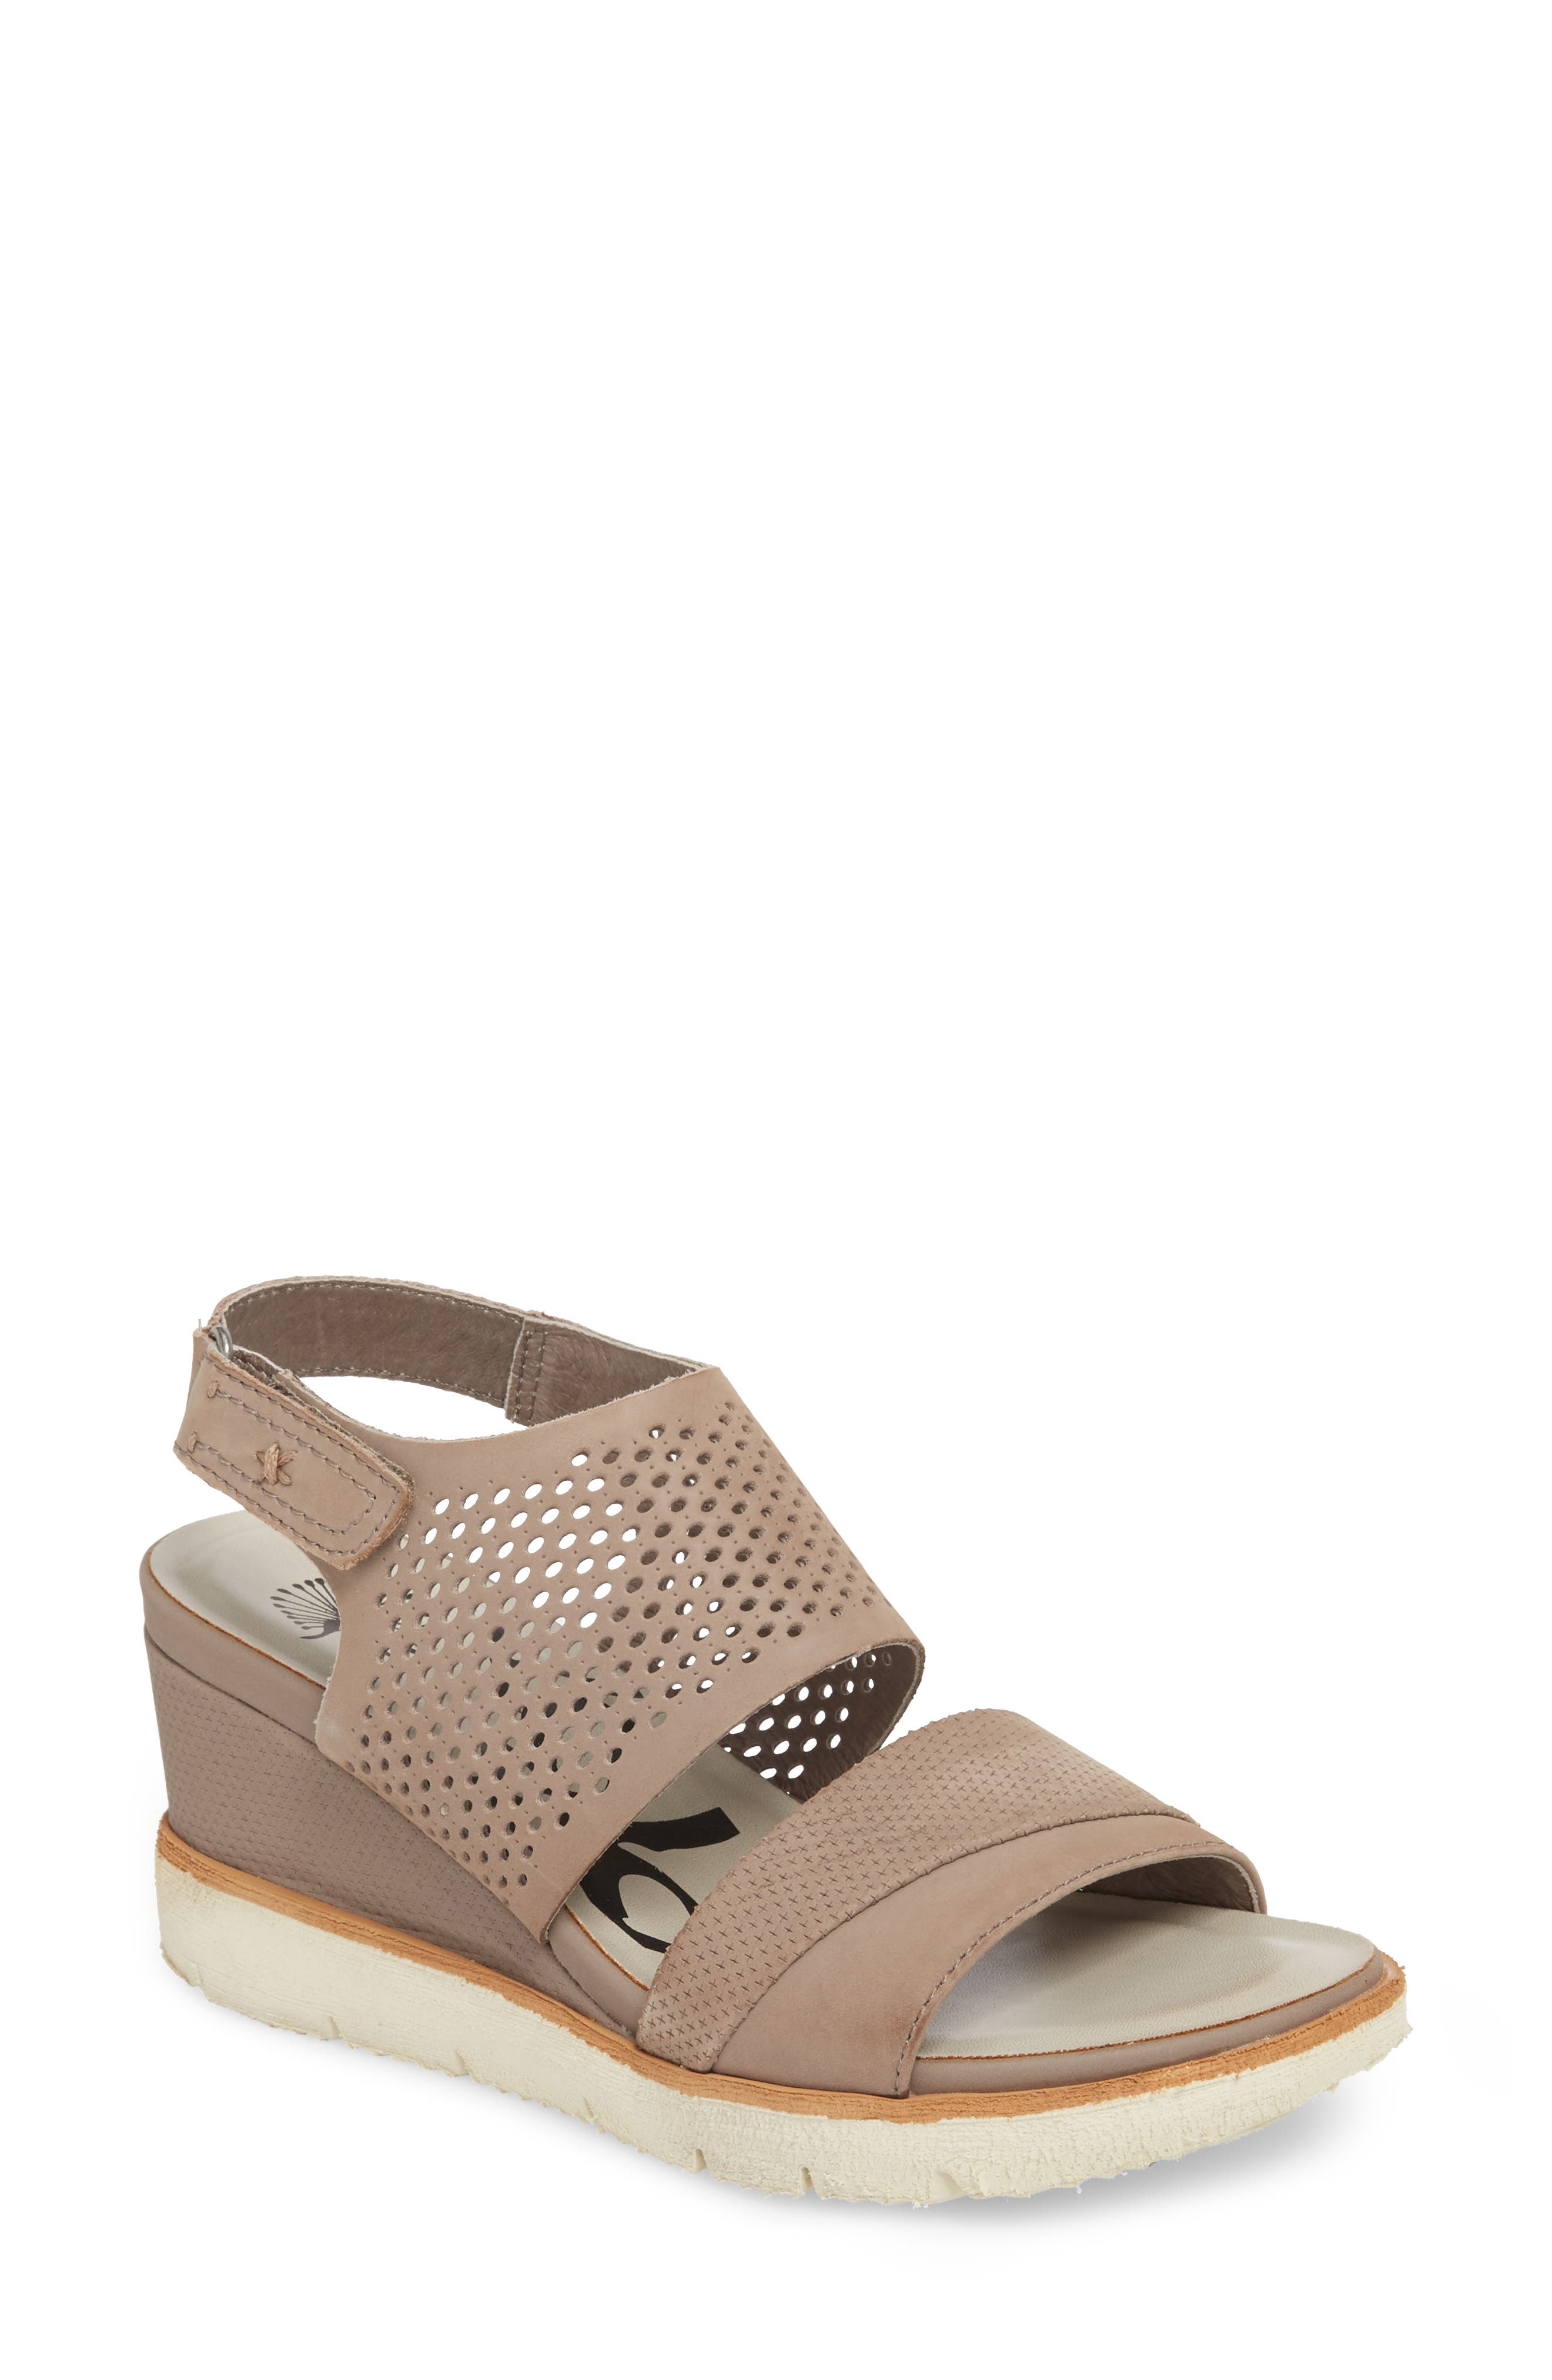 OTBT, Milky Way Wedge Sandal, Main thumbnail 1, color, COCOA LEATHER